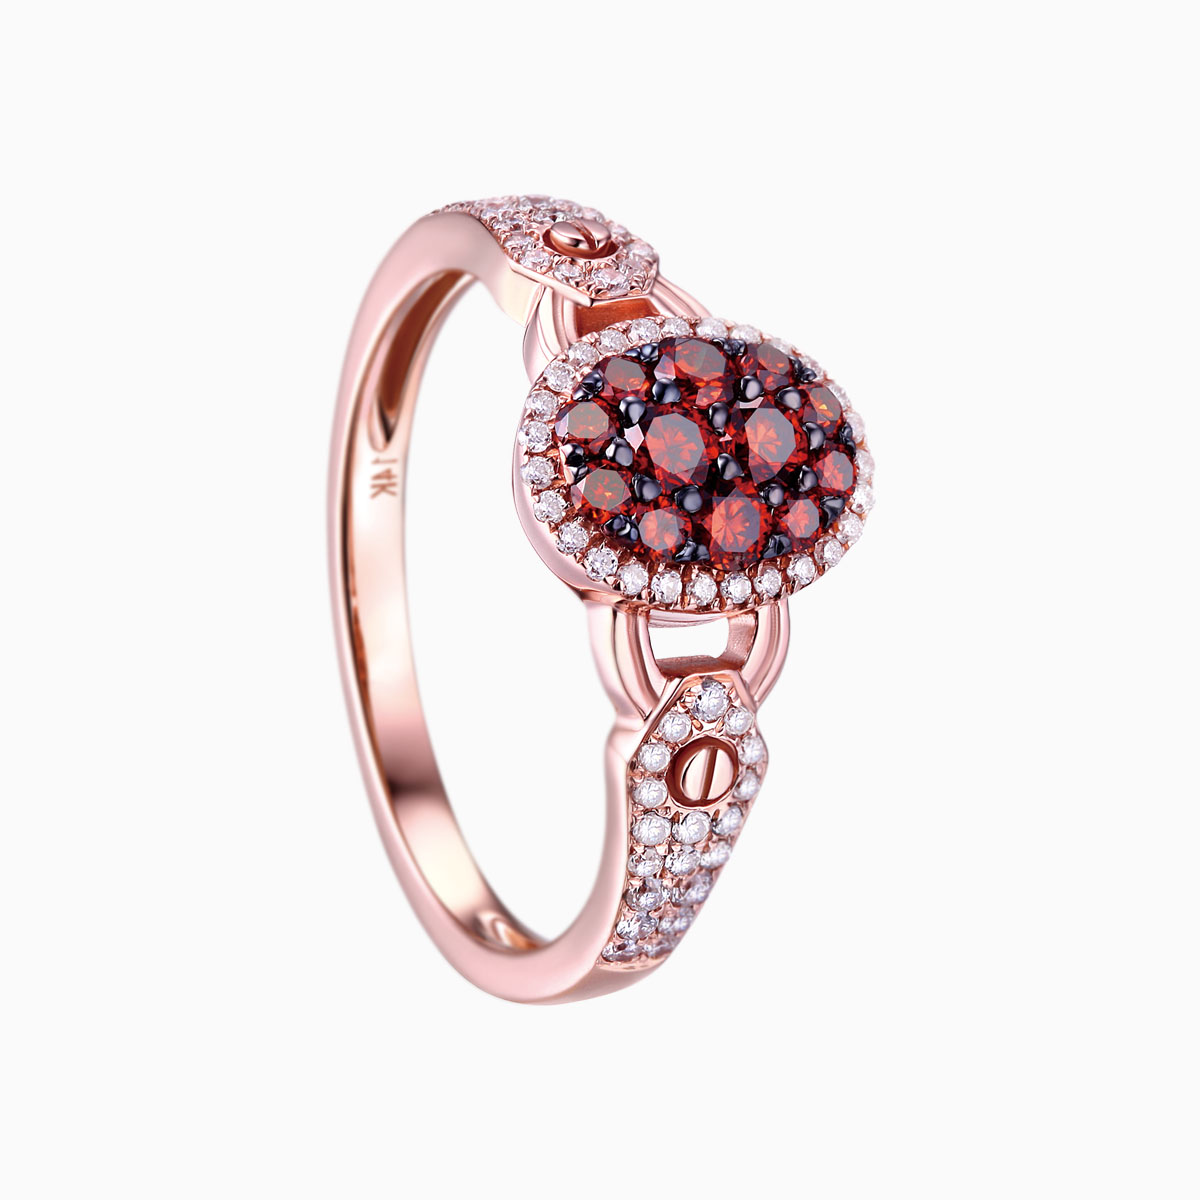 R17601COG- 14K Rose Gold Diamond Ring, 0.62 TCW